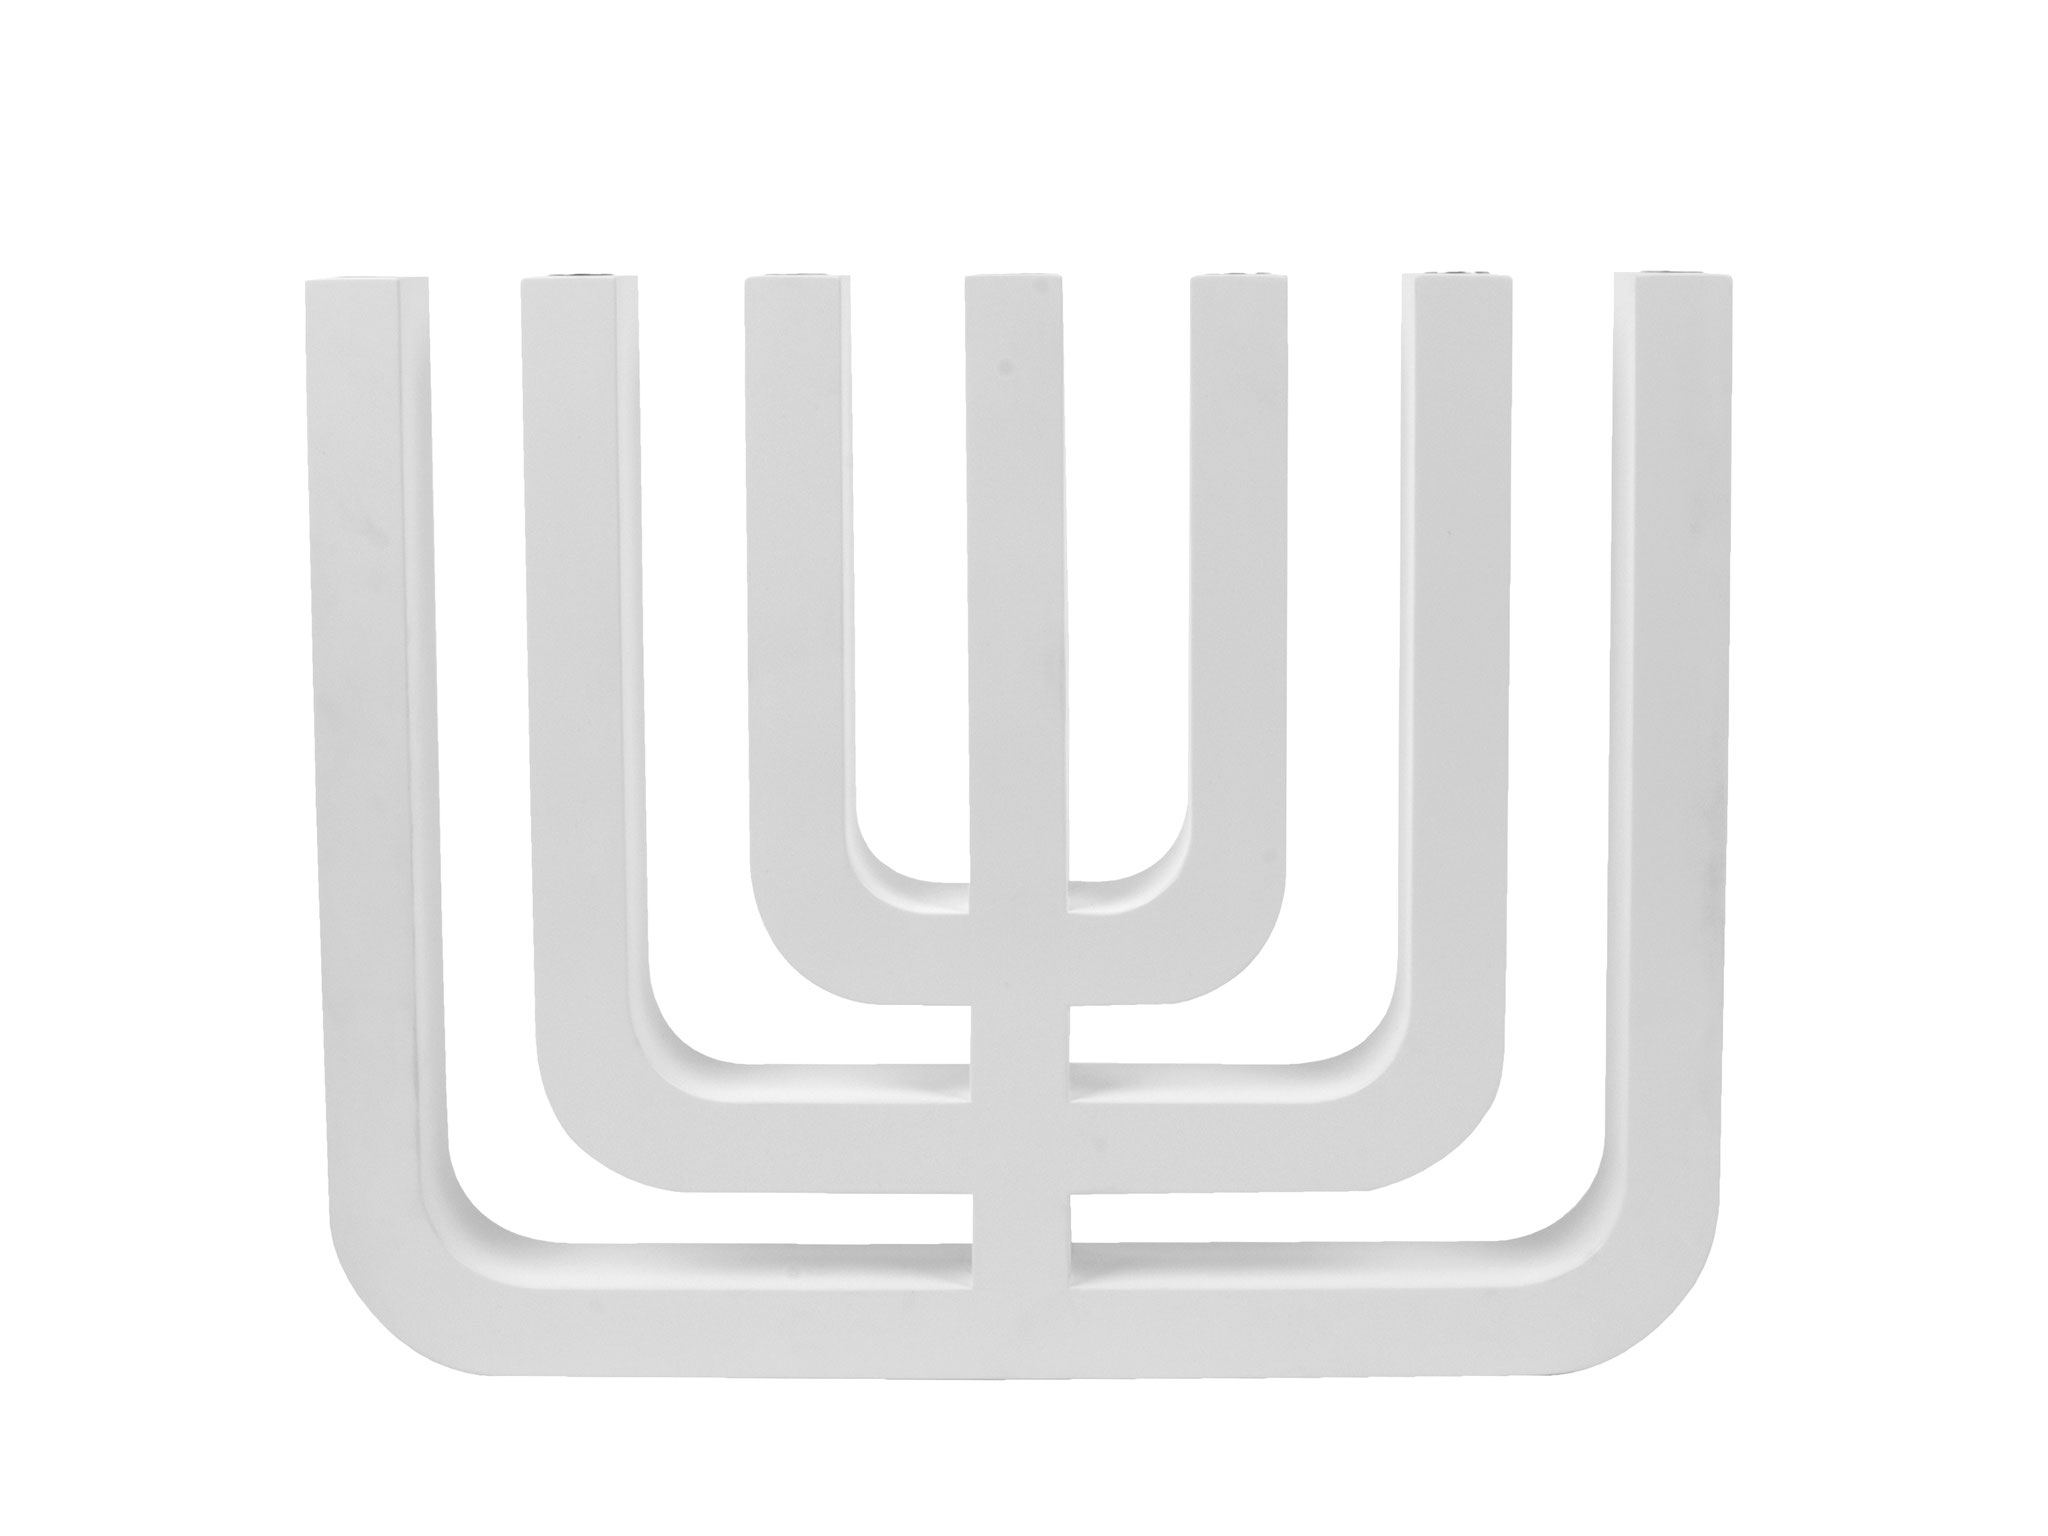 Menorah craftzz de website van margrietfoolen it was been a symbol of judaism since ancient times margriet foolen was inspired by the beautiful and archetypical chandelier she designed a modern biocorpaavc Choice Image